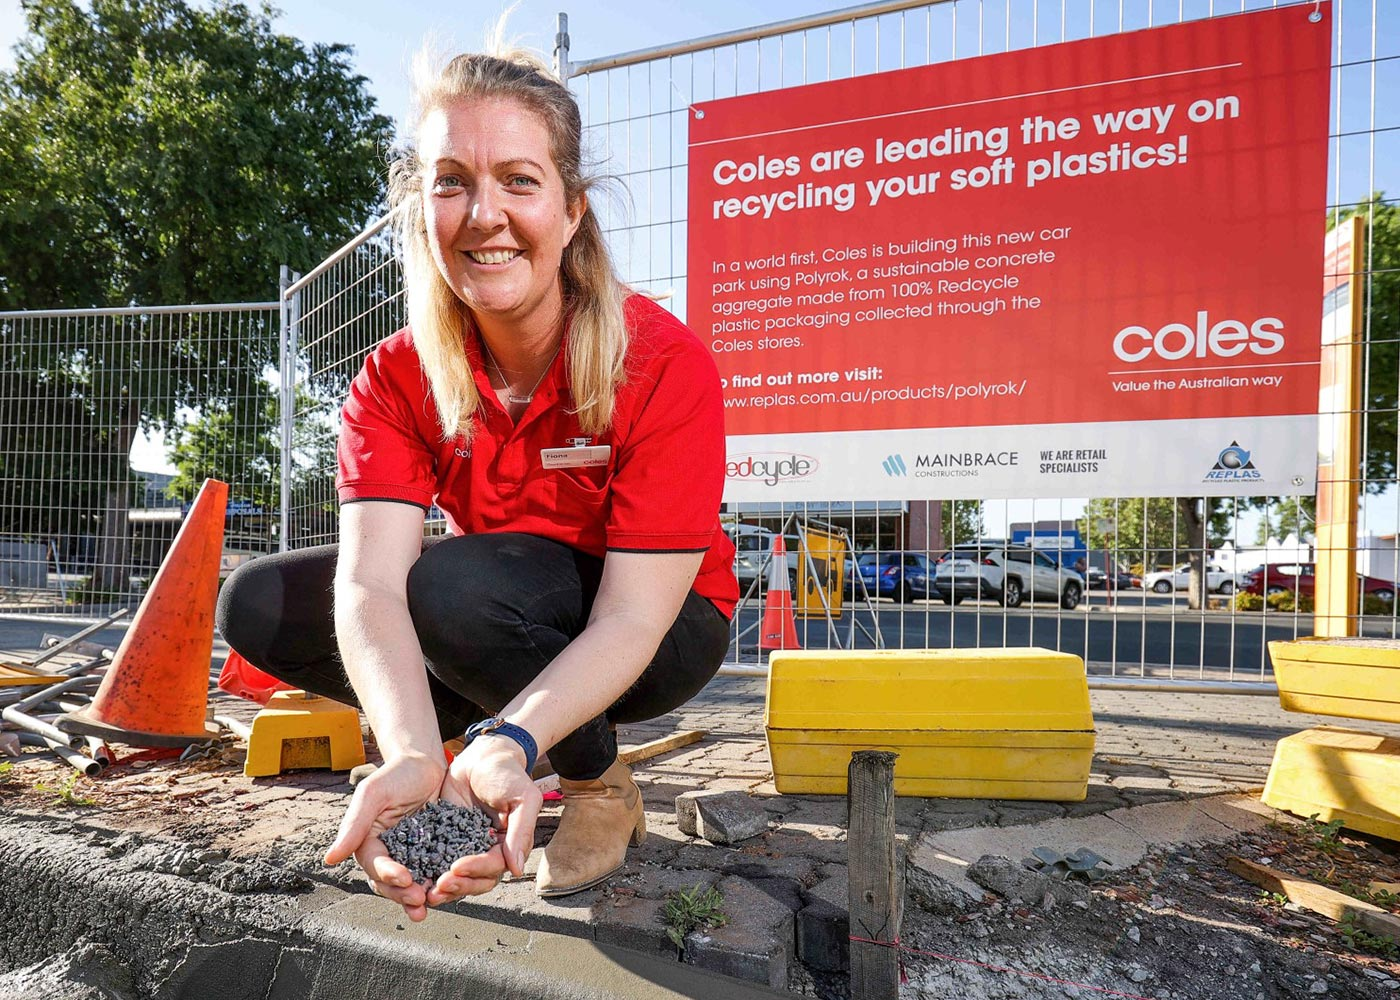 Coles State Construction Manager Victoria Fiona Lloyd